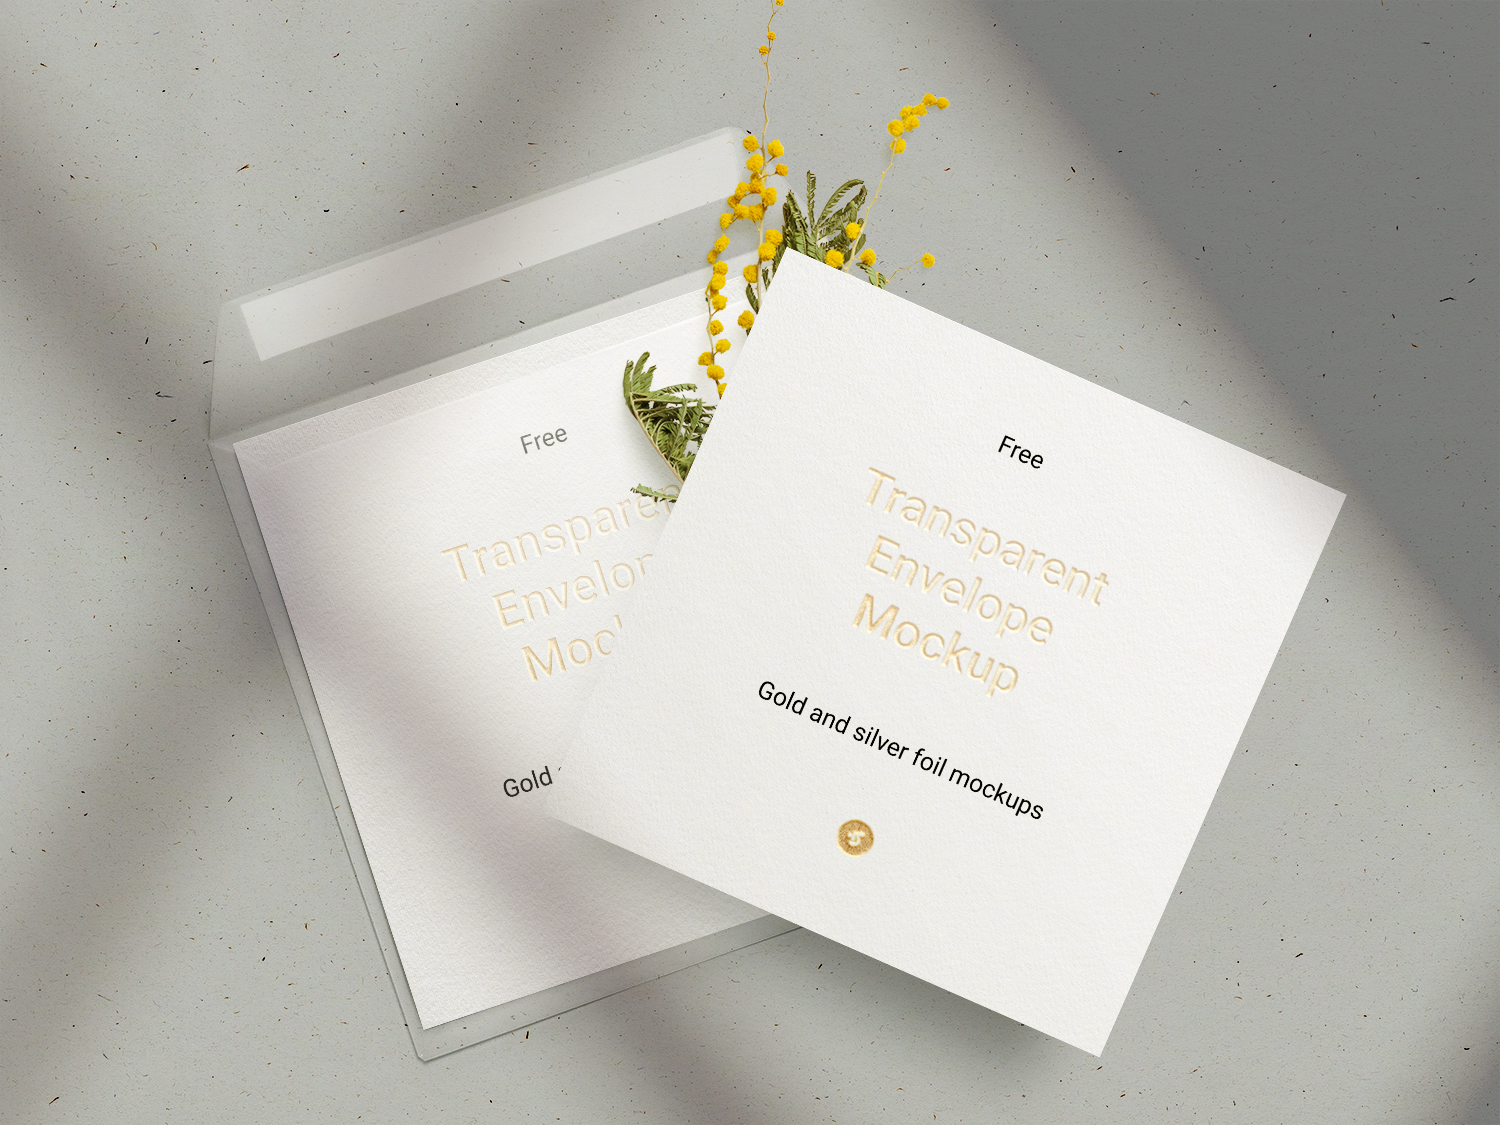 Free Invitation Card Mockup